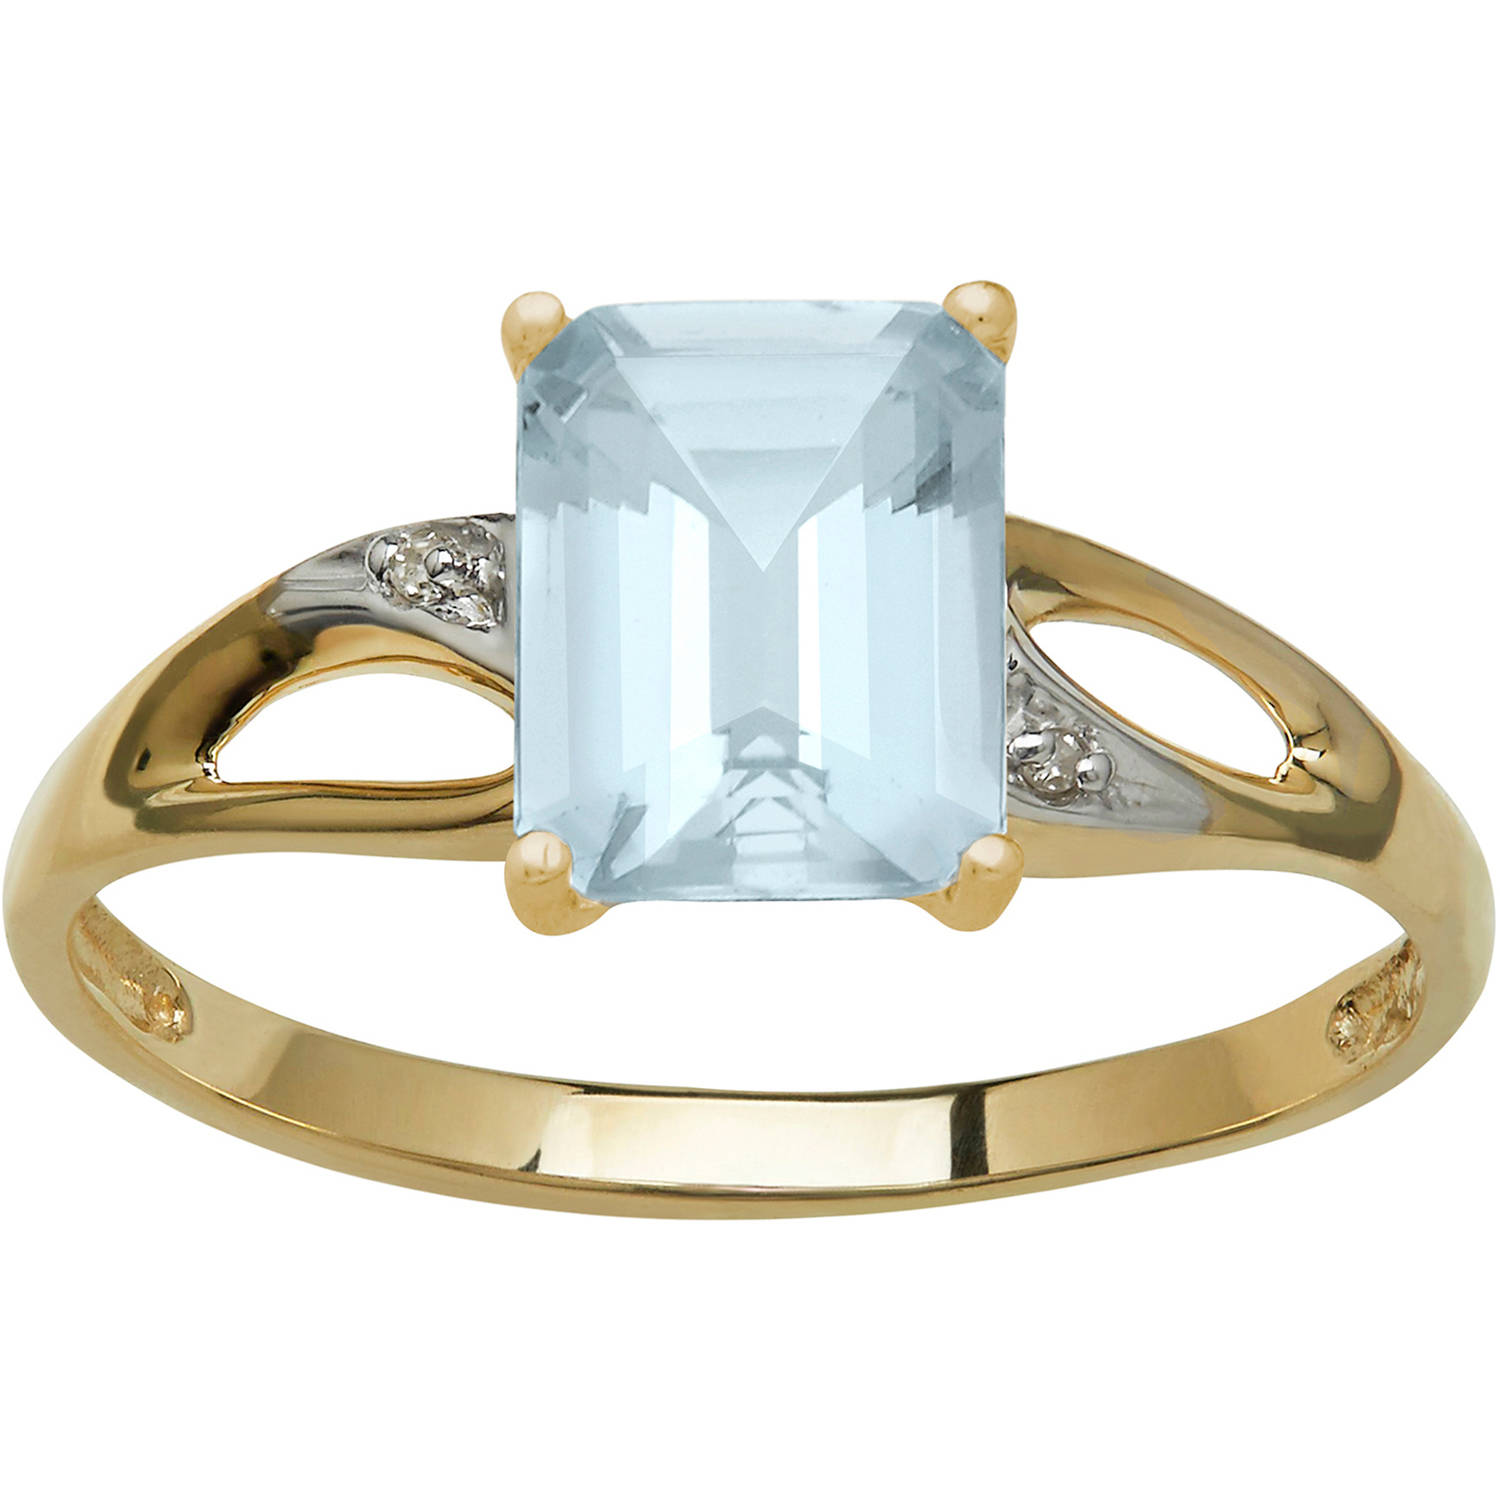 Simply Gold Gemstone 7x5mm Emerald-Cut Aquamarine with Diamond Accent 10kt Yellow Gold Ring, Size 7